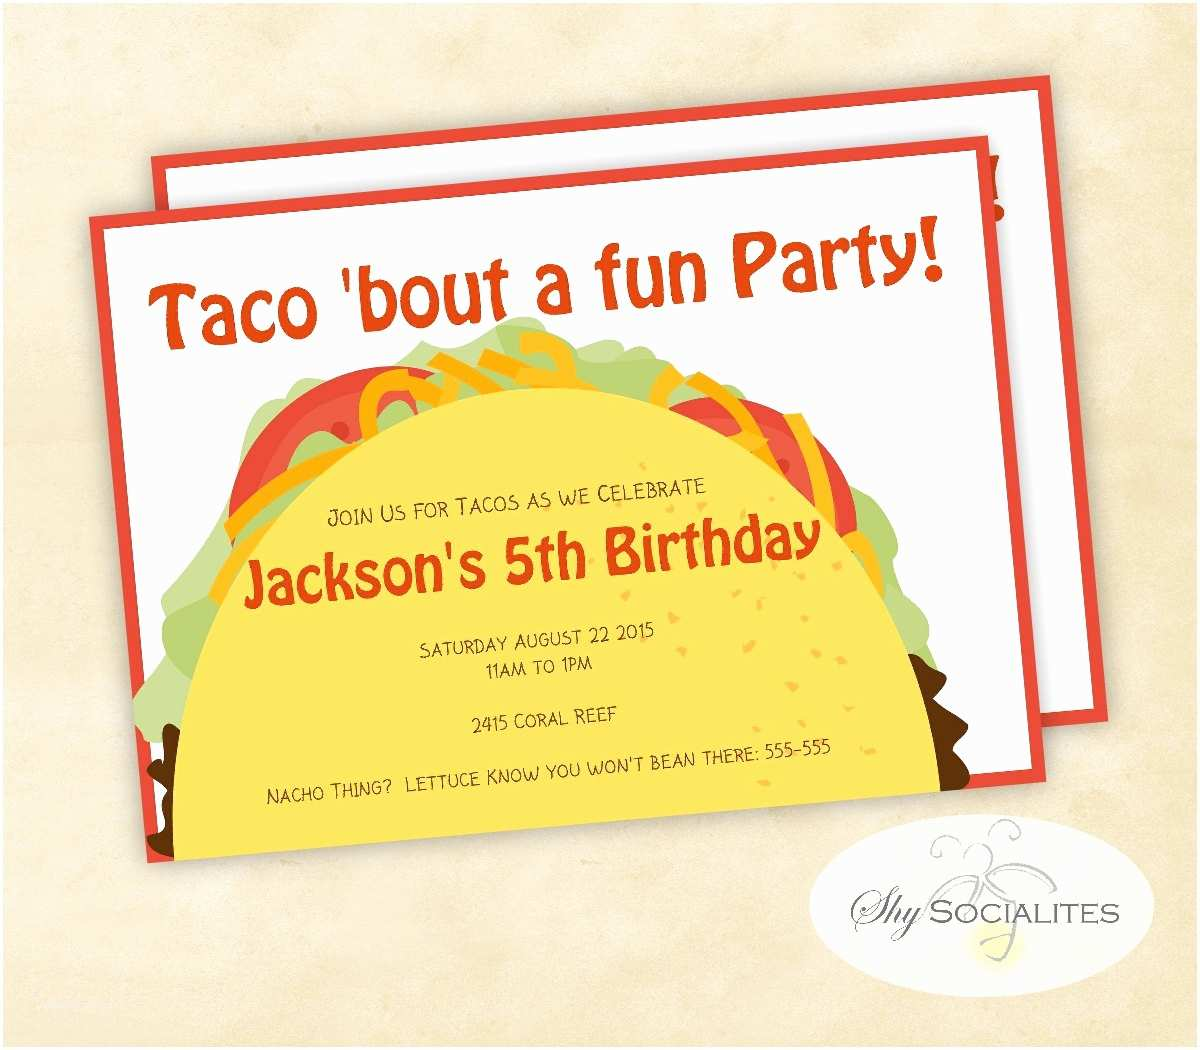 Taco Party Invitation Taco Party Taco Tuesday Cinco De Mayo Fiesta Taco Bar